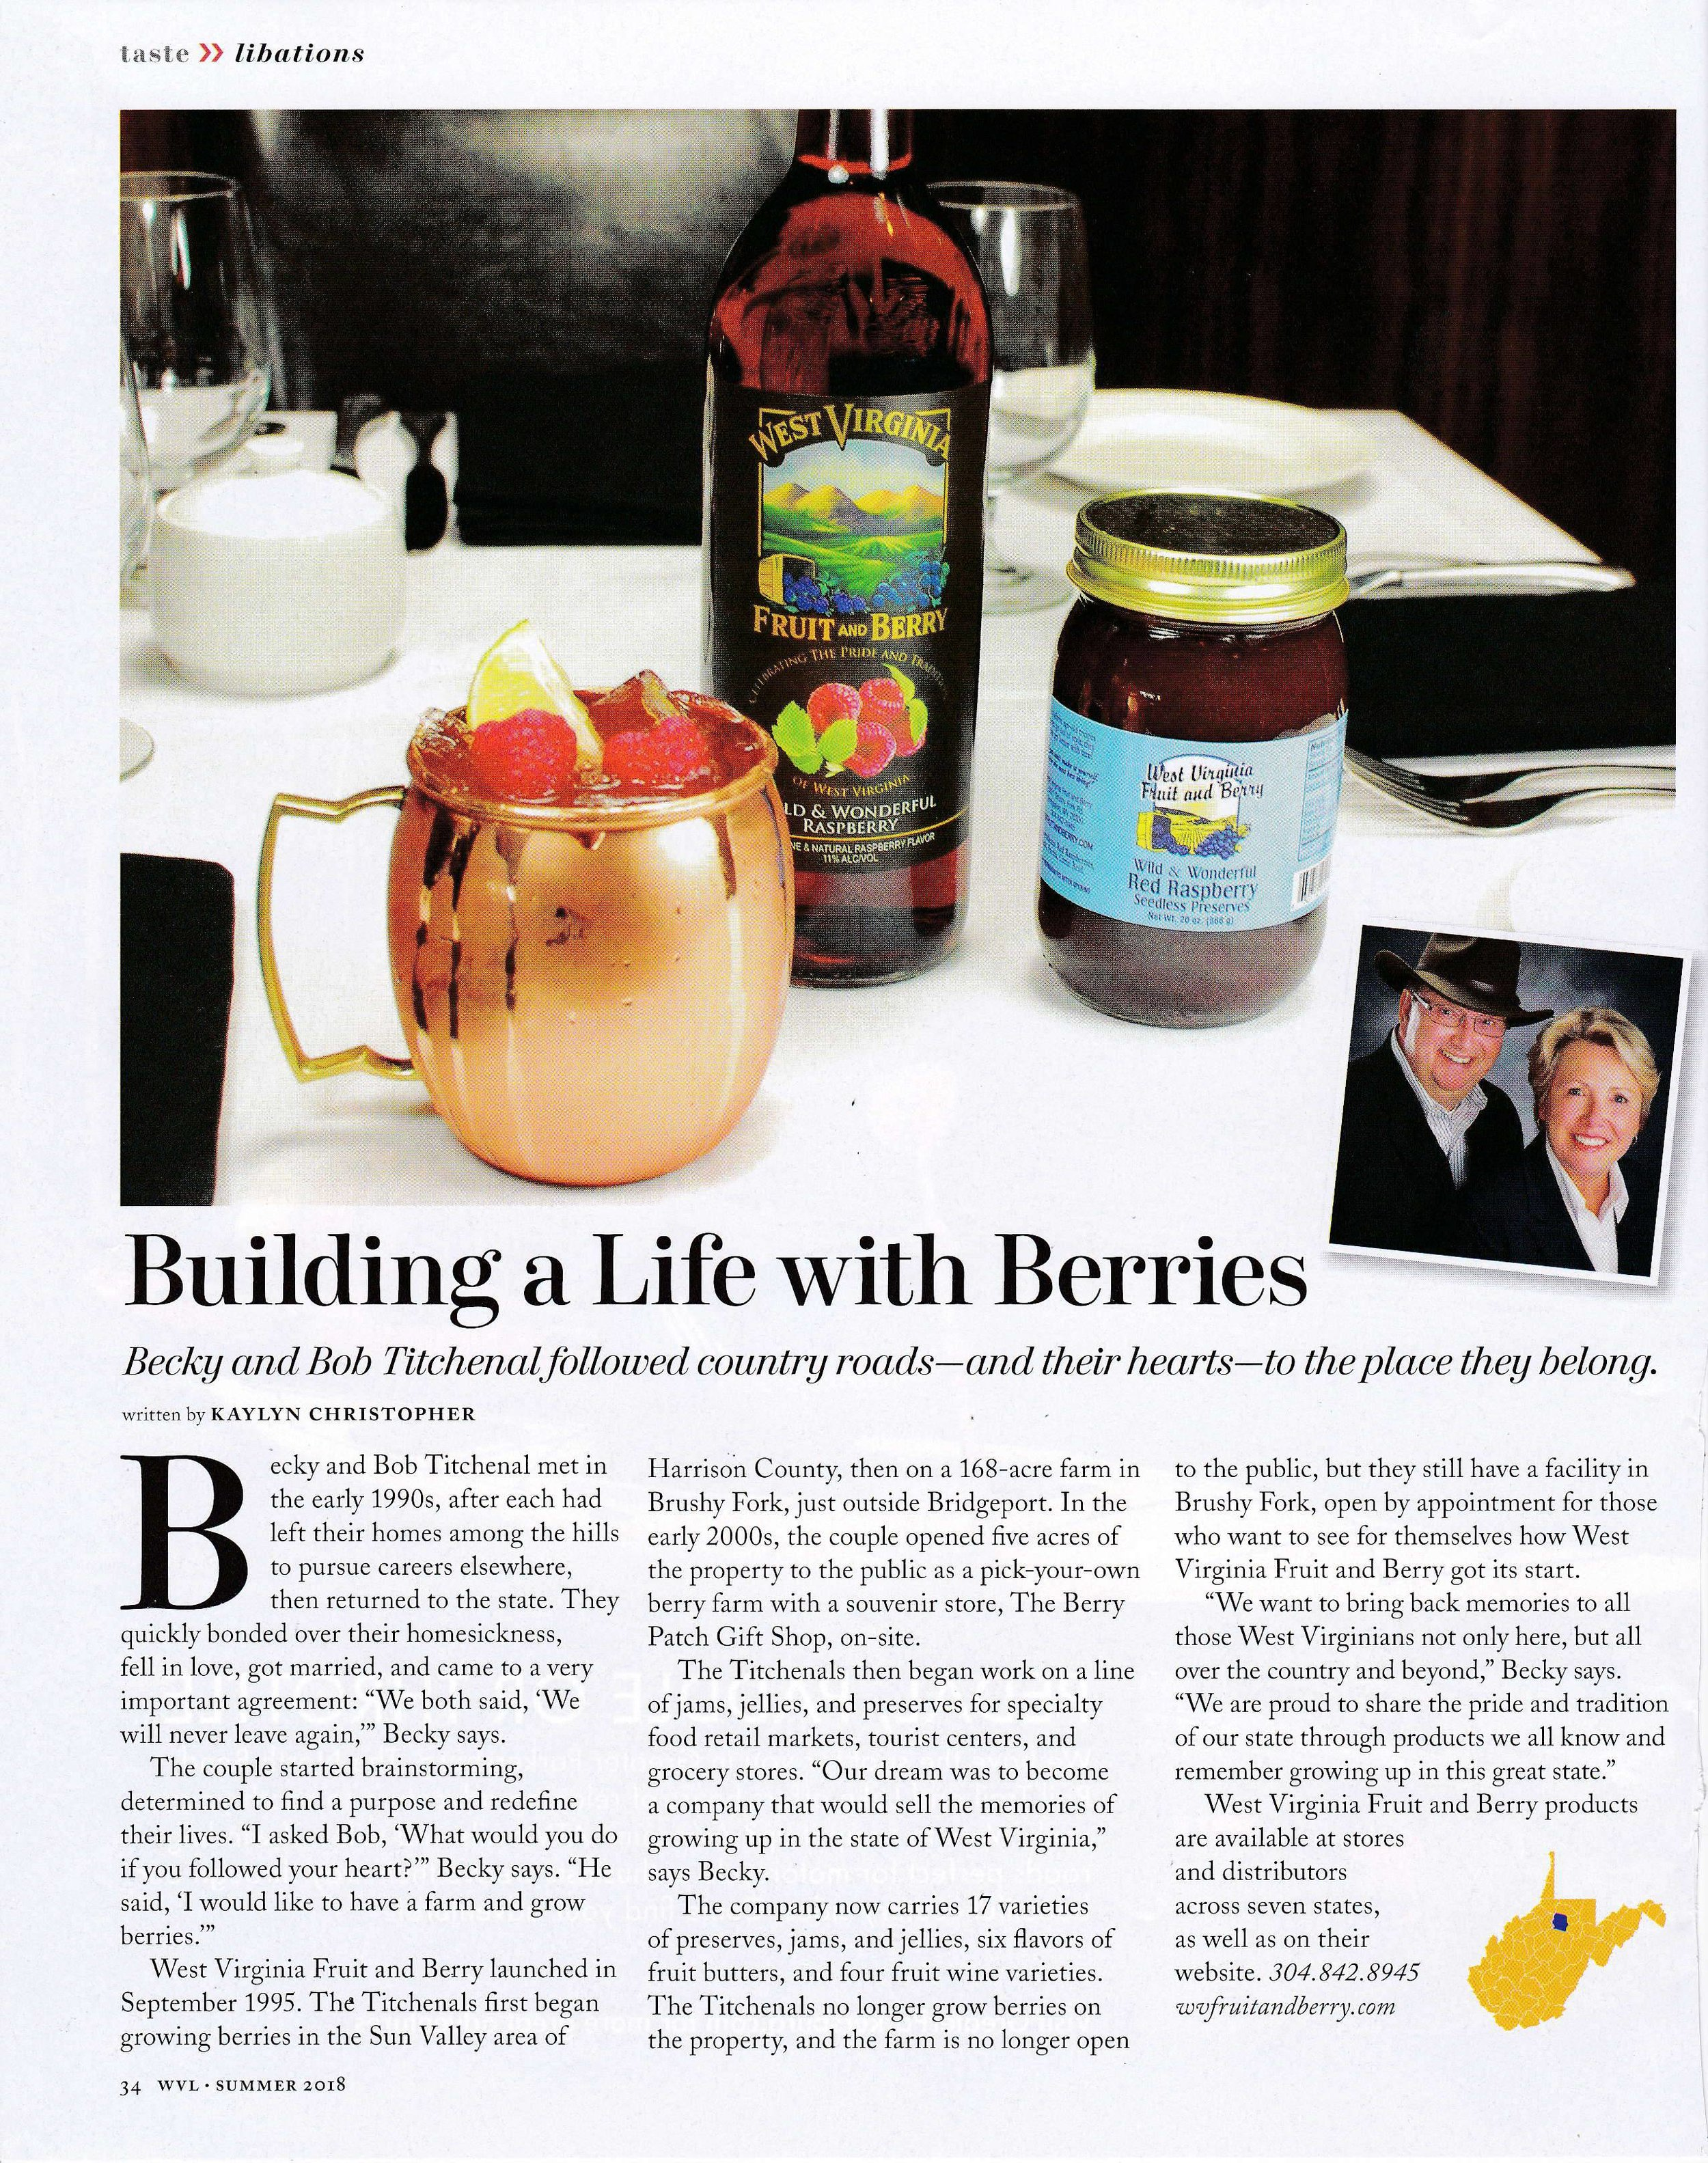 Article in WV Living Magazine - Summer 2018 edition